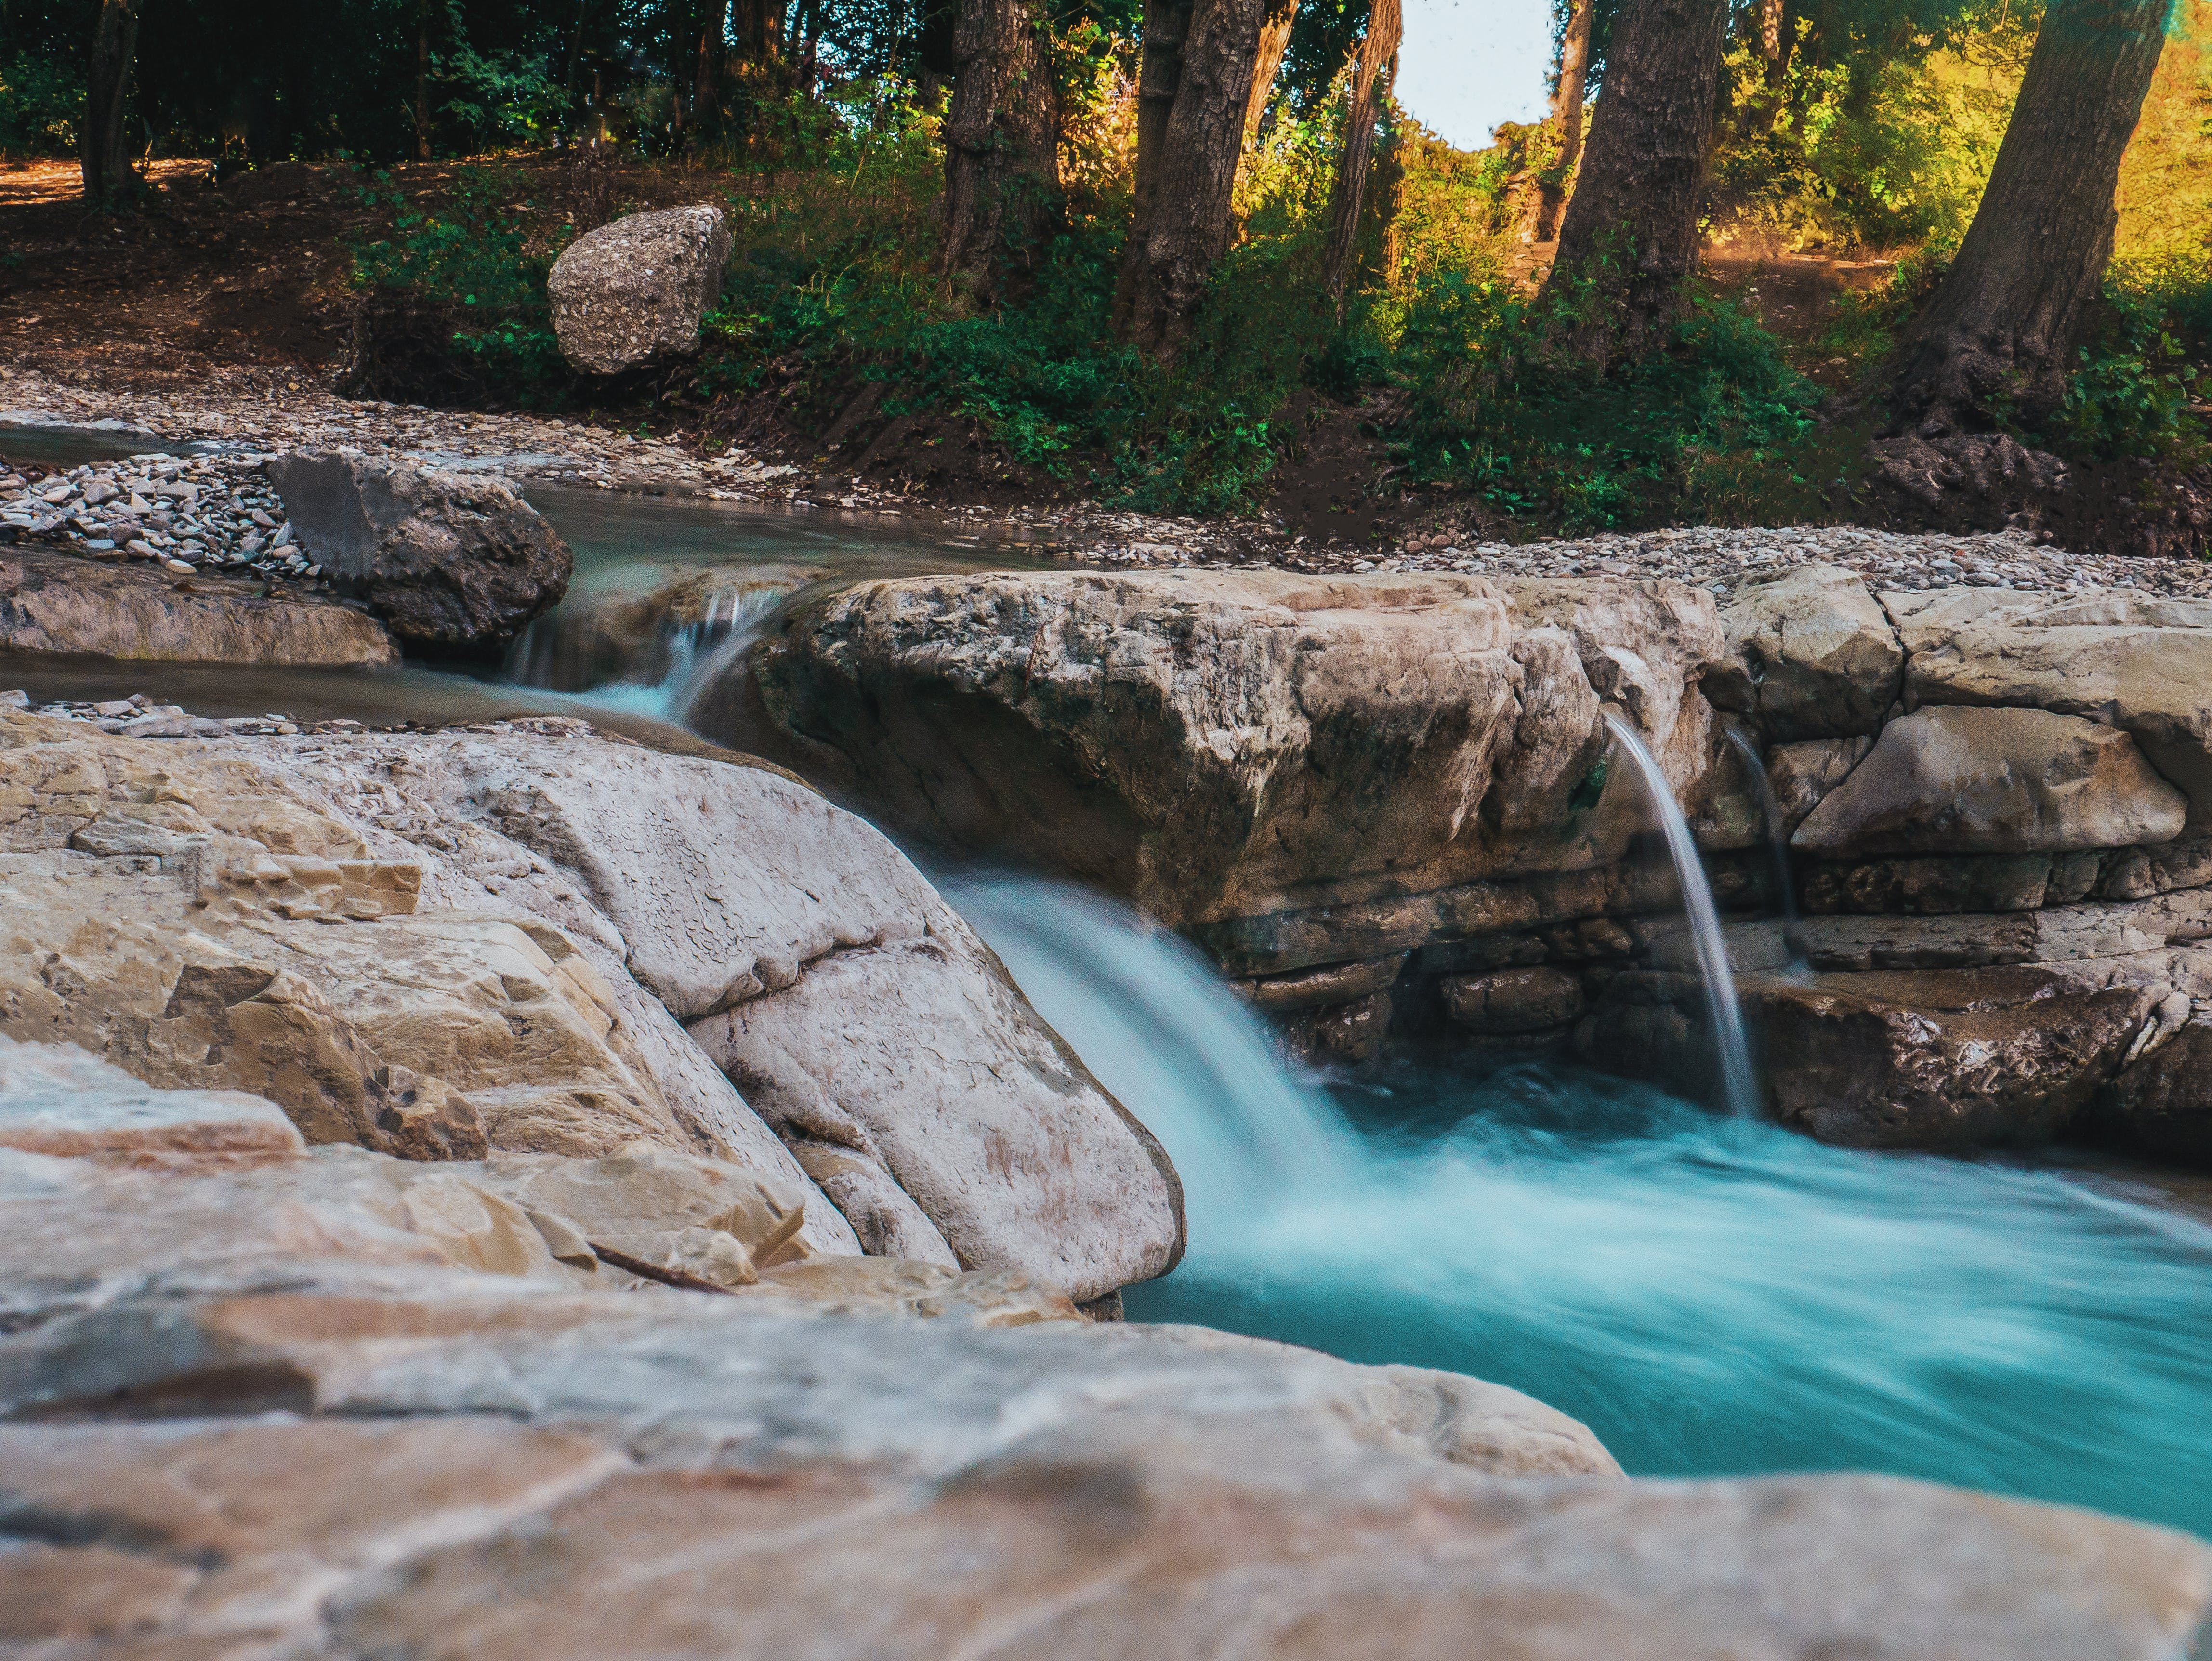 Photography of Water Flow Near Rocks